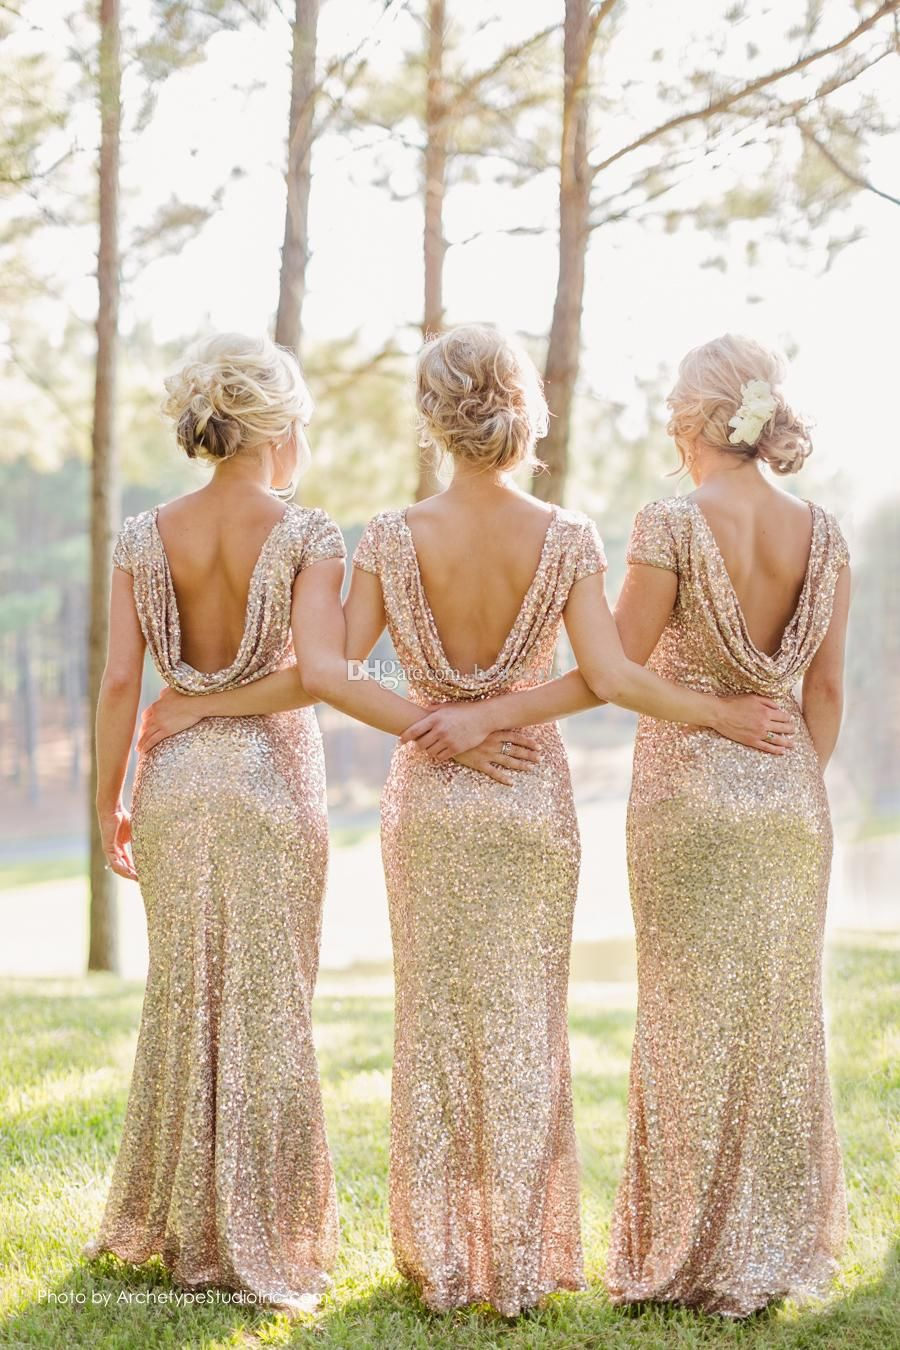 d8483f97335 Sparkly Rose Gold Cheap 2015 Mermaid Bridesmaid Dresses 2016 Short Sleeve  Sequins Backless Long Beach Wedding Party Gowns Gold Champagne